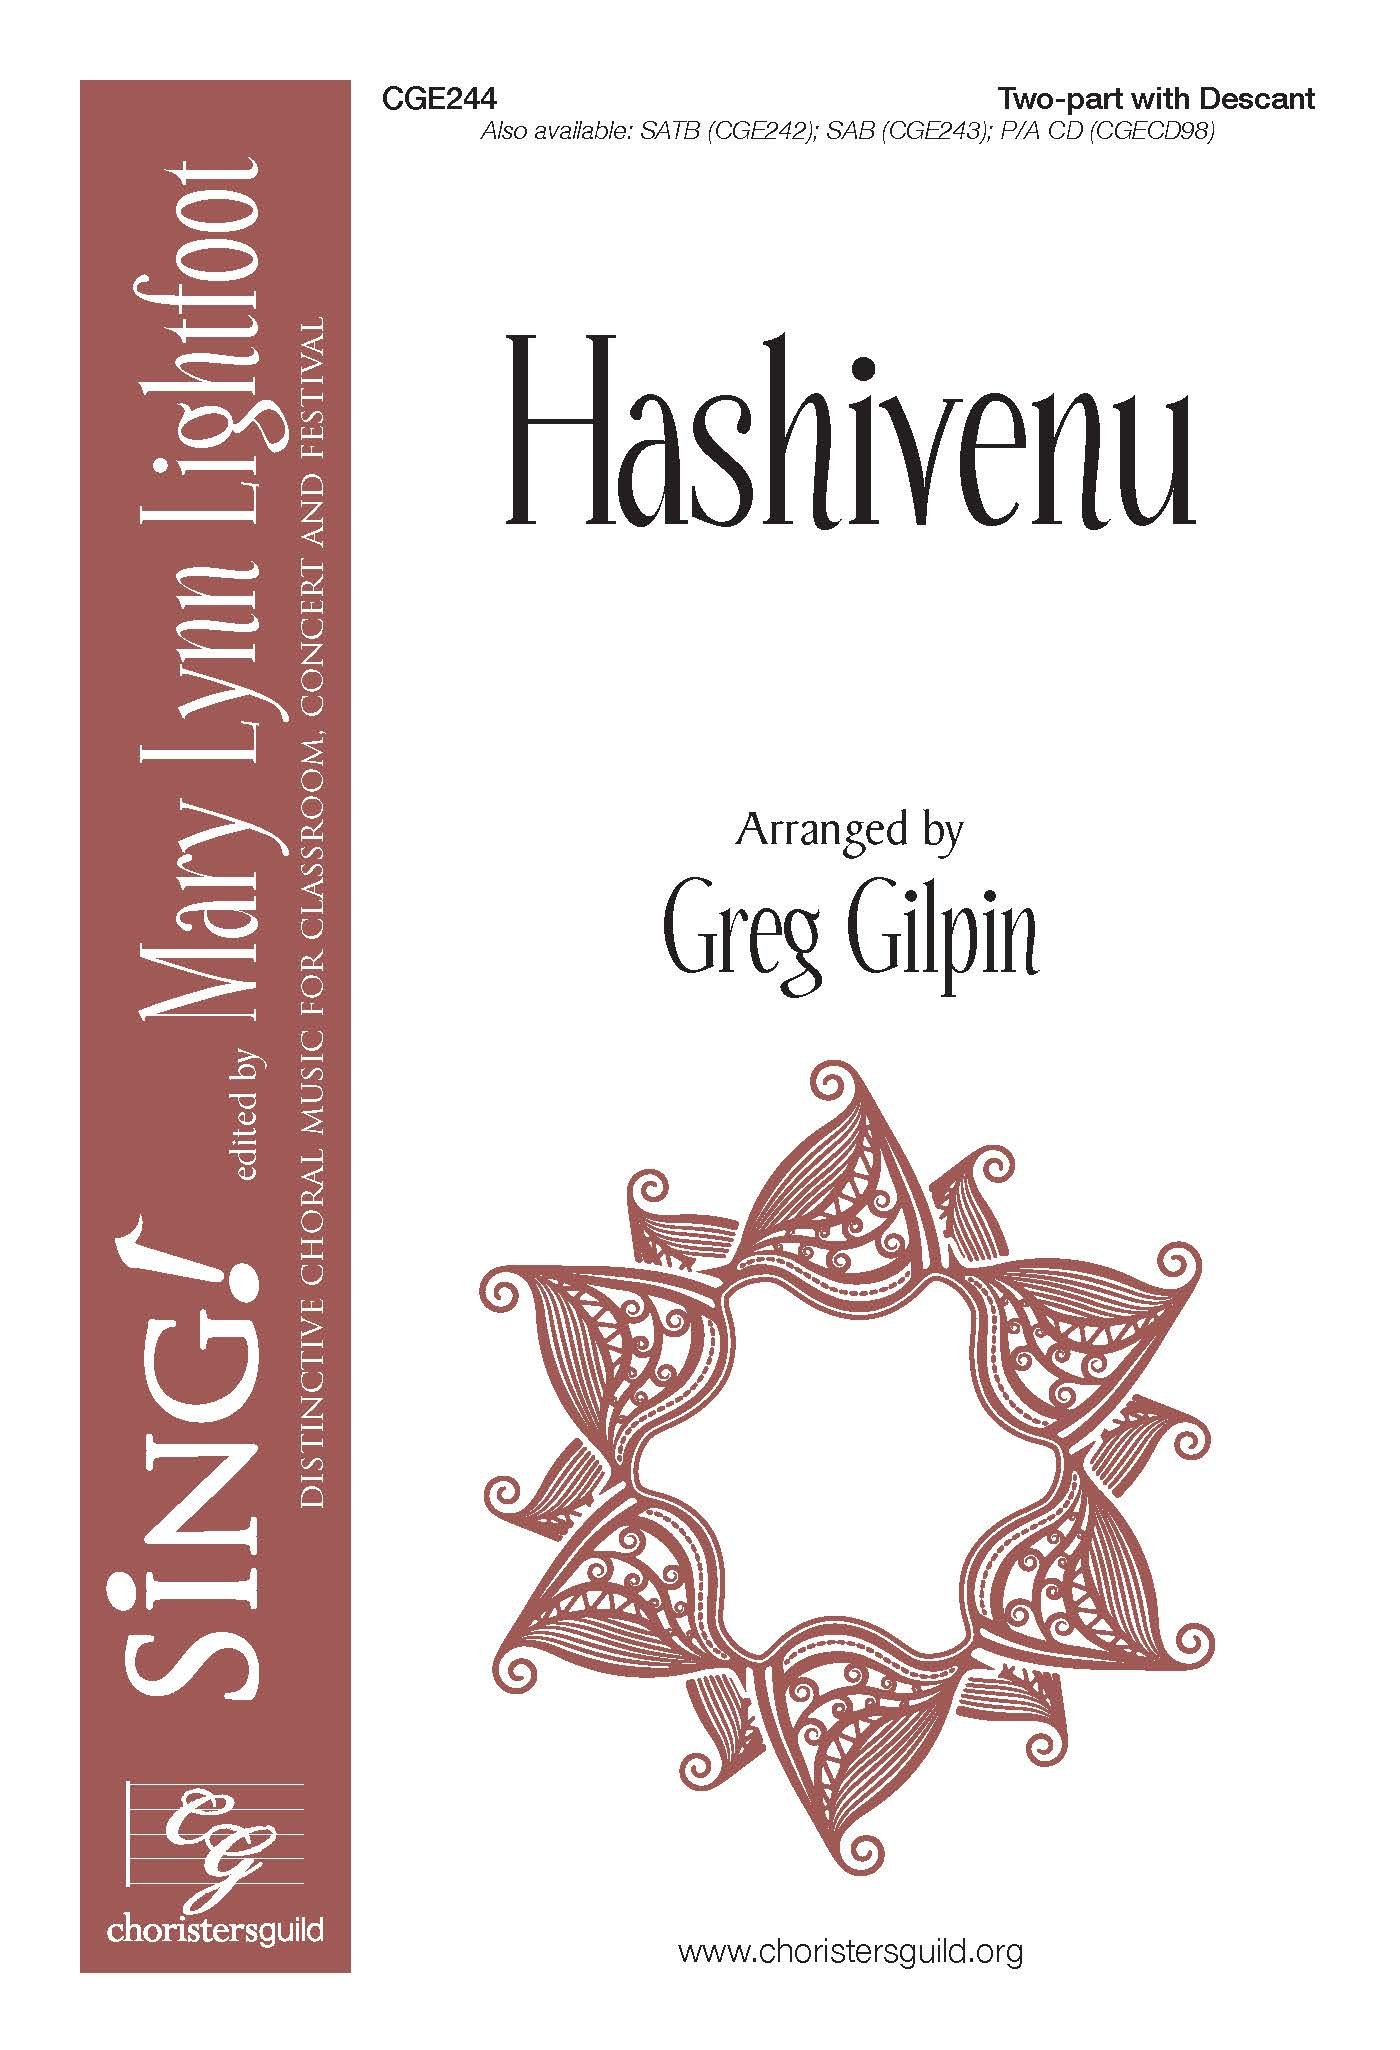 Hashivenu Two-part with Descant